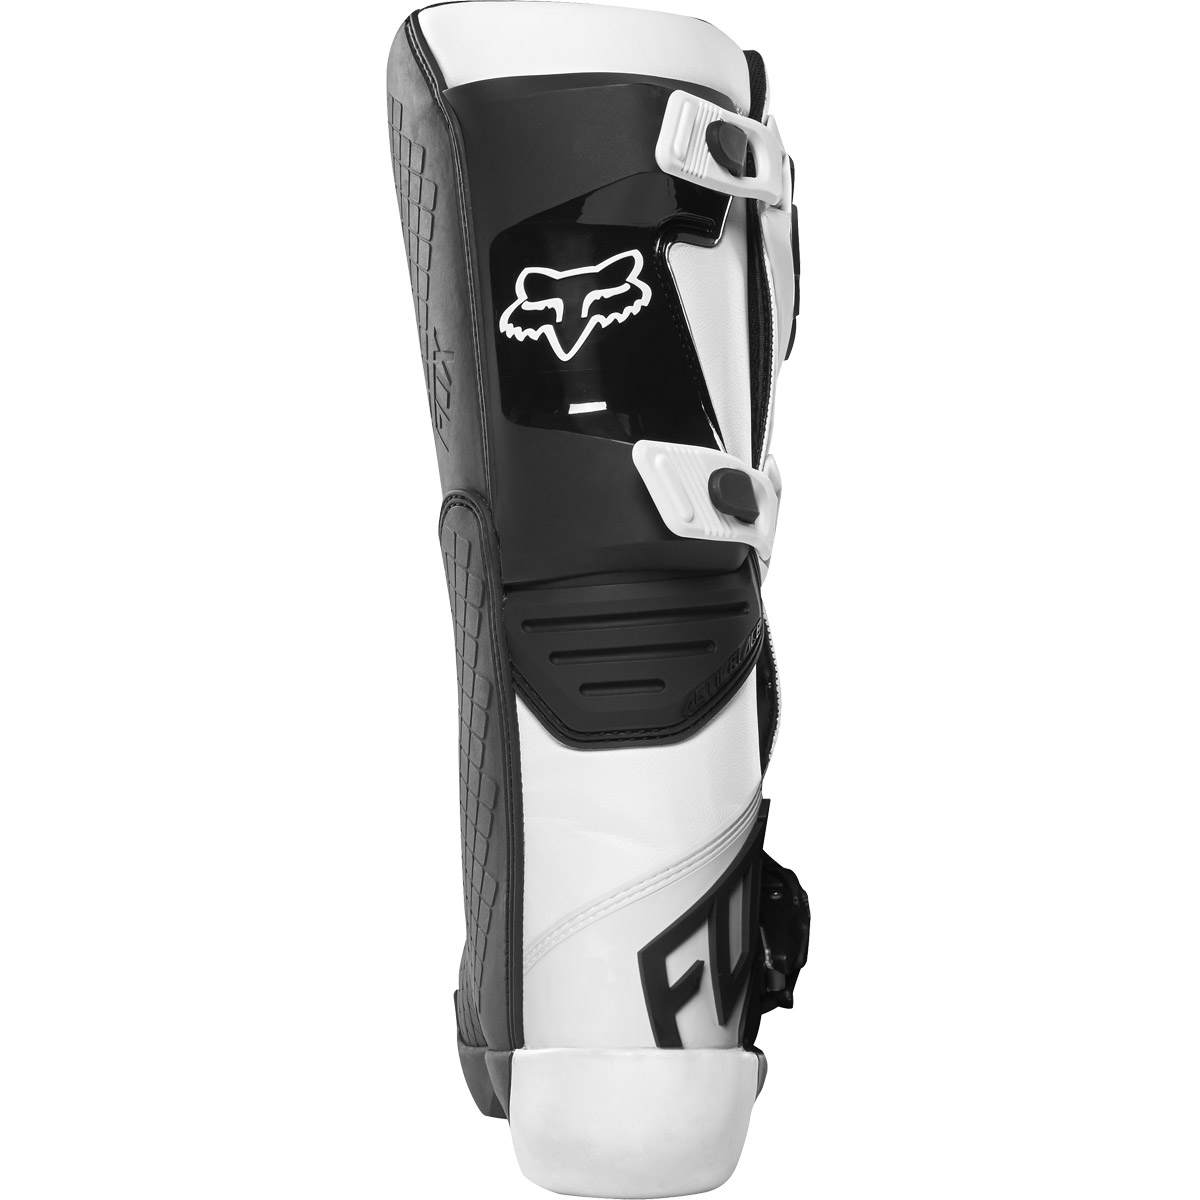 21483-008 Fox Racing 2019 Comp Offroad Motocross Boots White Stiefel Weiss Crosslaarzen Wit Bottes Blanc